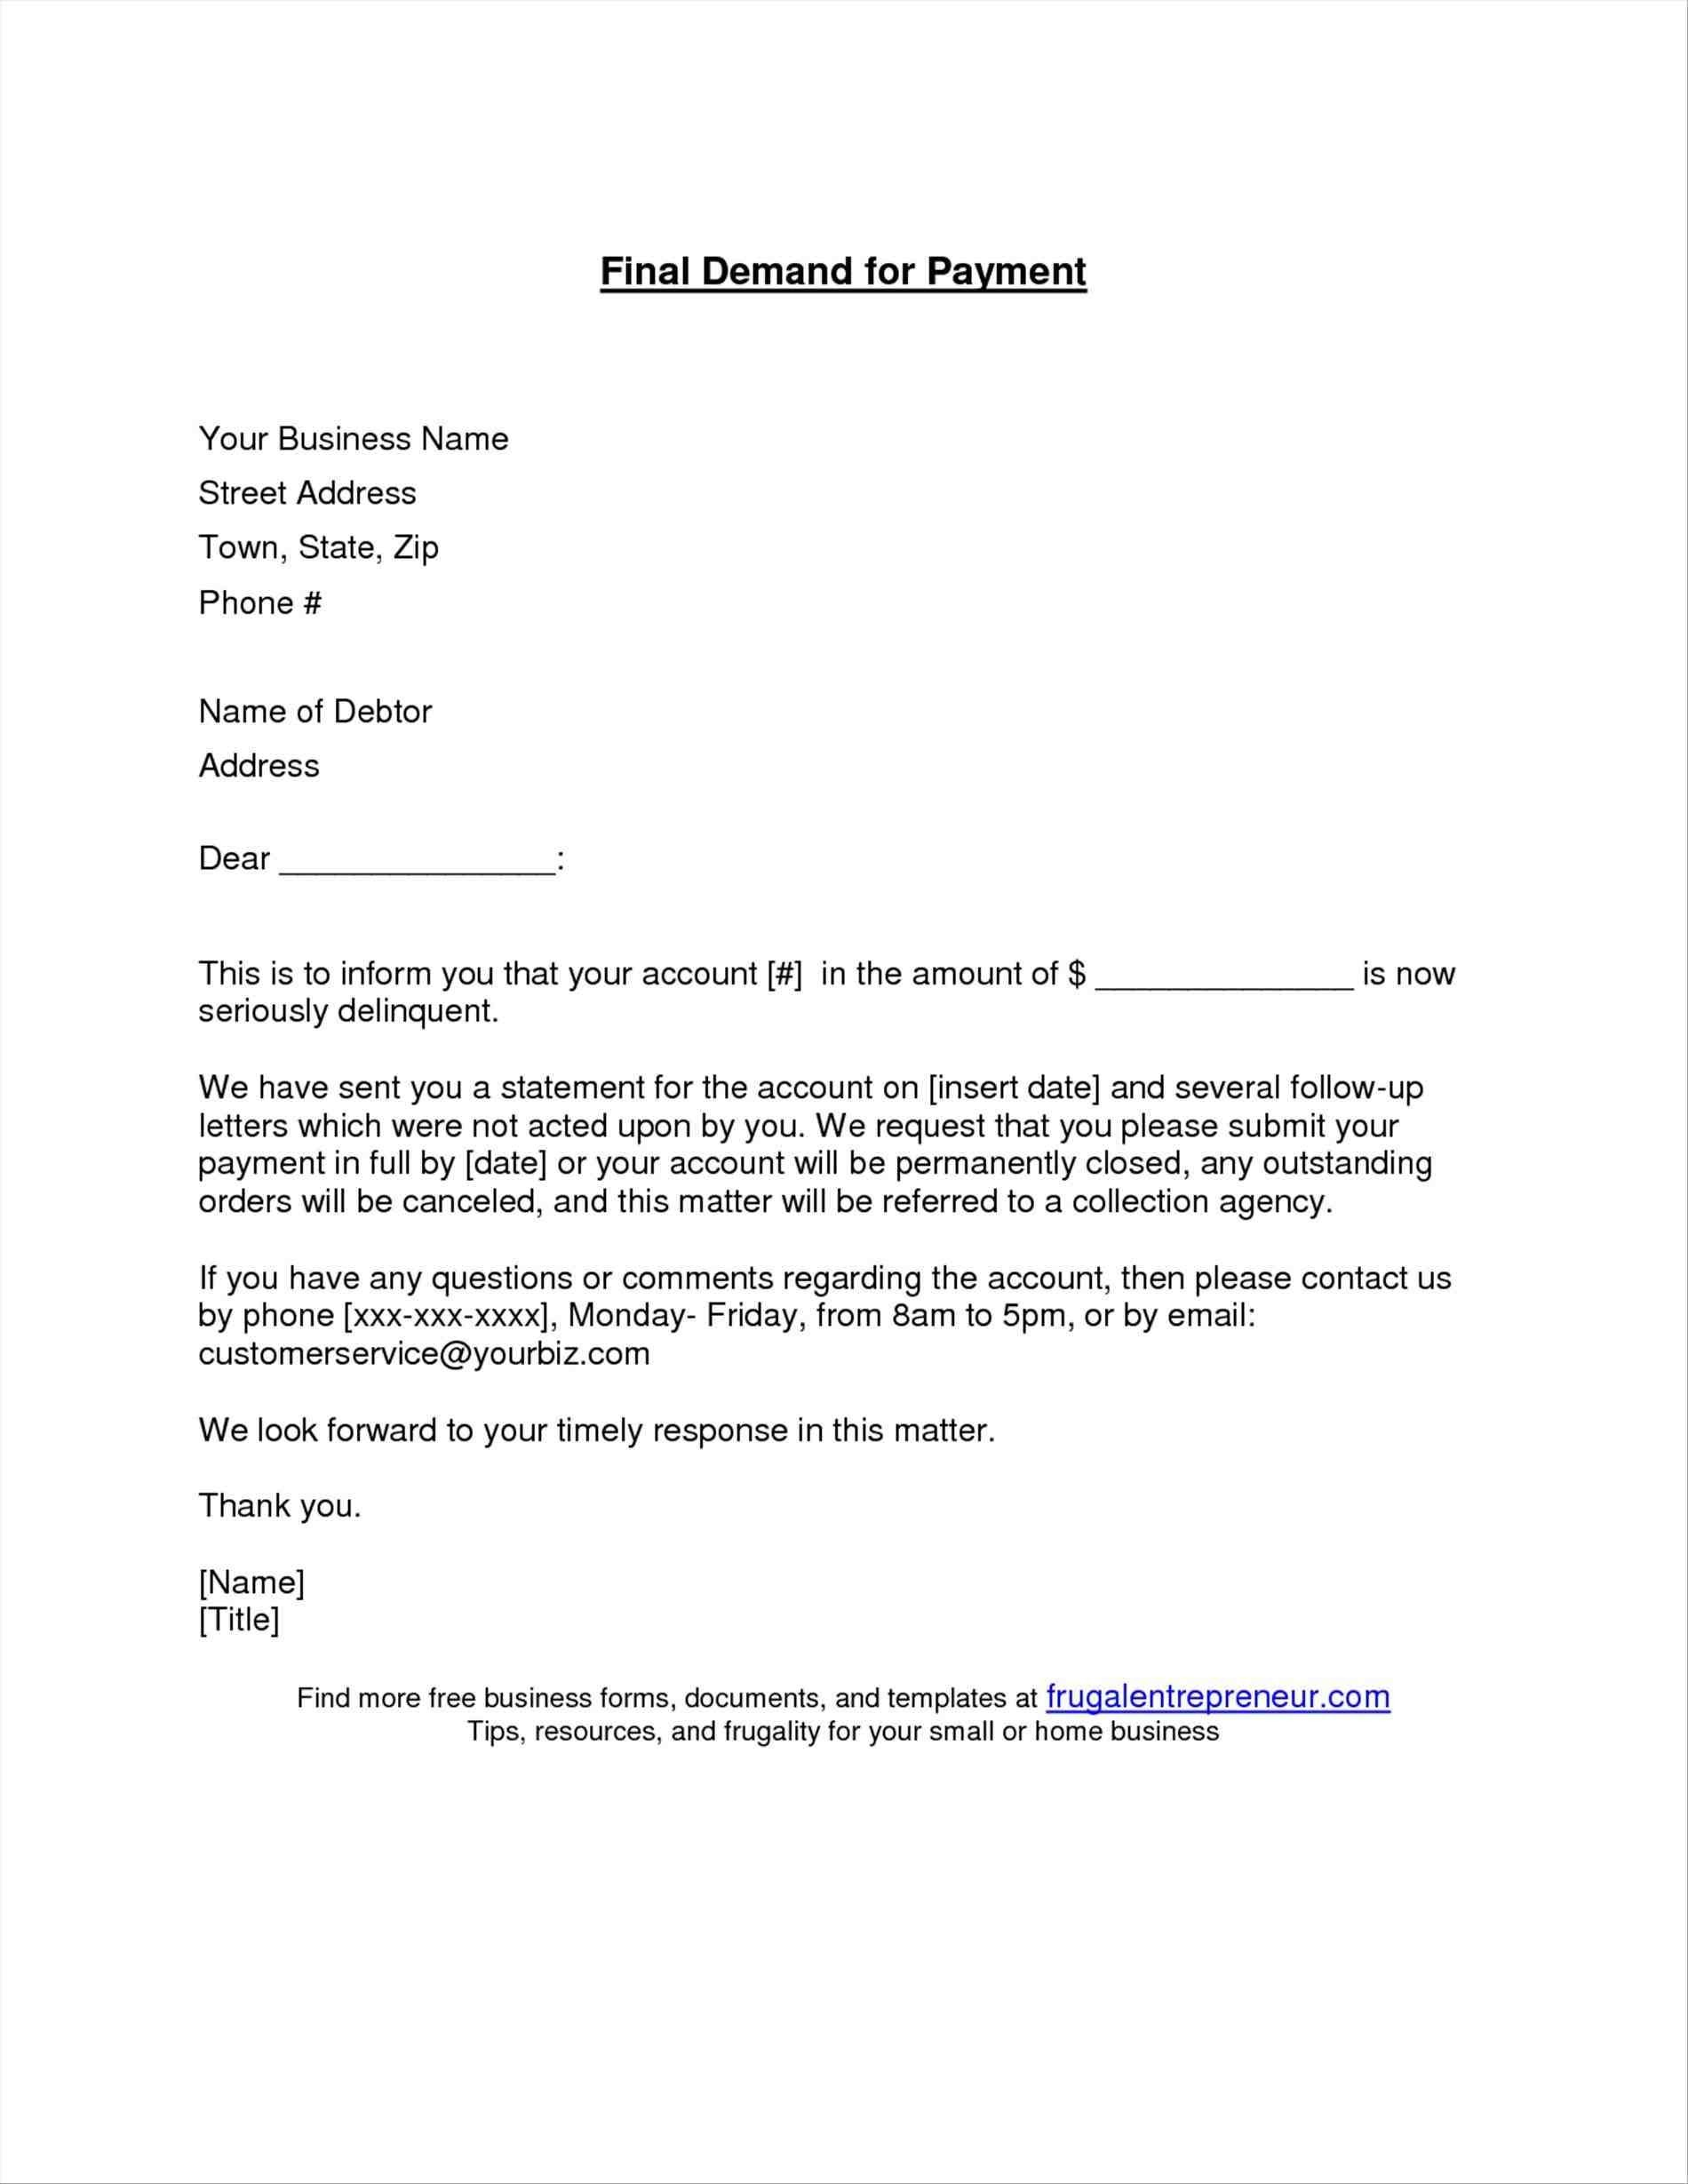 Demand for Payment Letter Template - Business Letter Template Request Payment Outstanding format Best Of